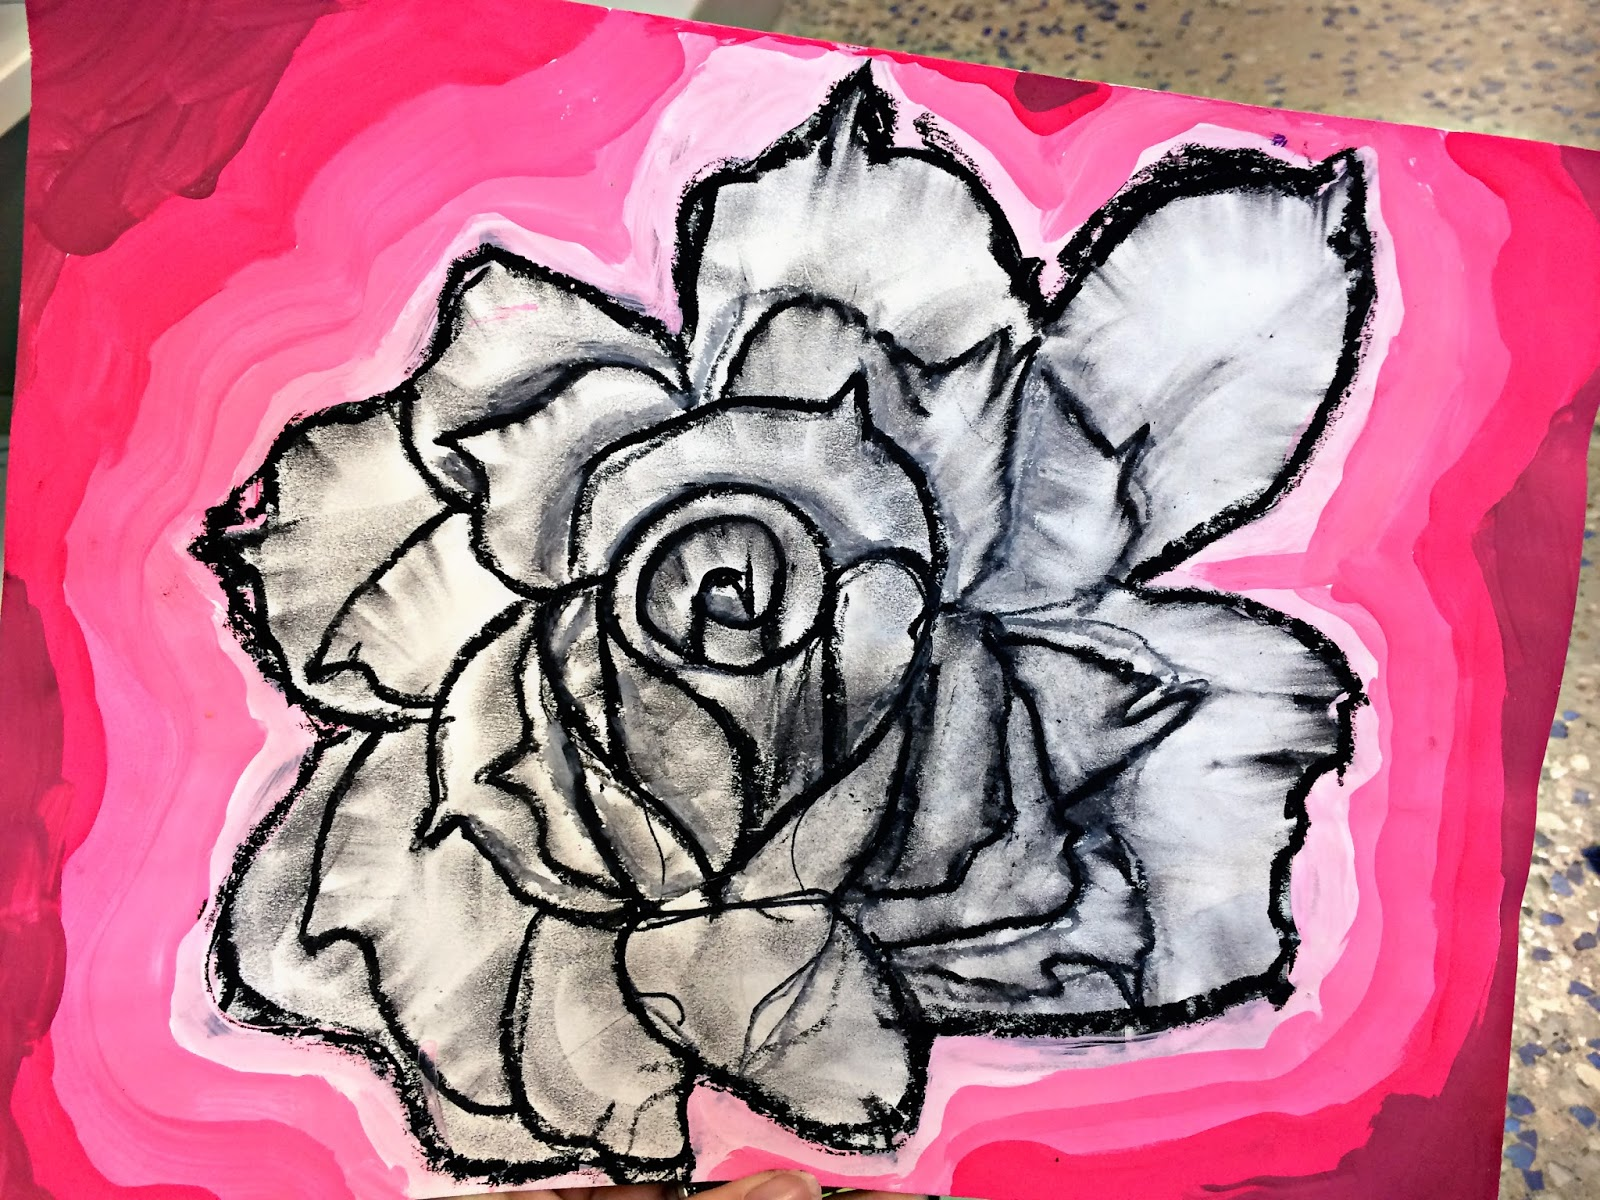 Color wheel art lesson for second grade -  They All Wanted To Make Black And Gray Roses With Neon Backgrounds I Love When A Creative Kid Completely Changes Up My Lesson Plans